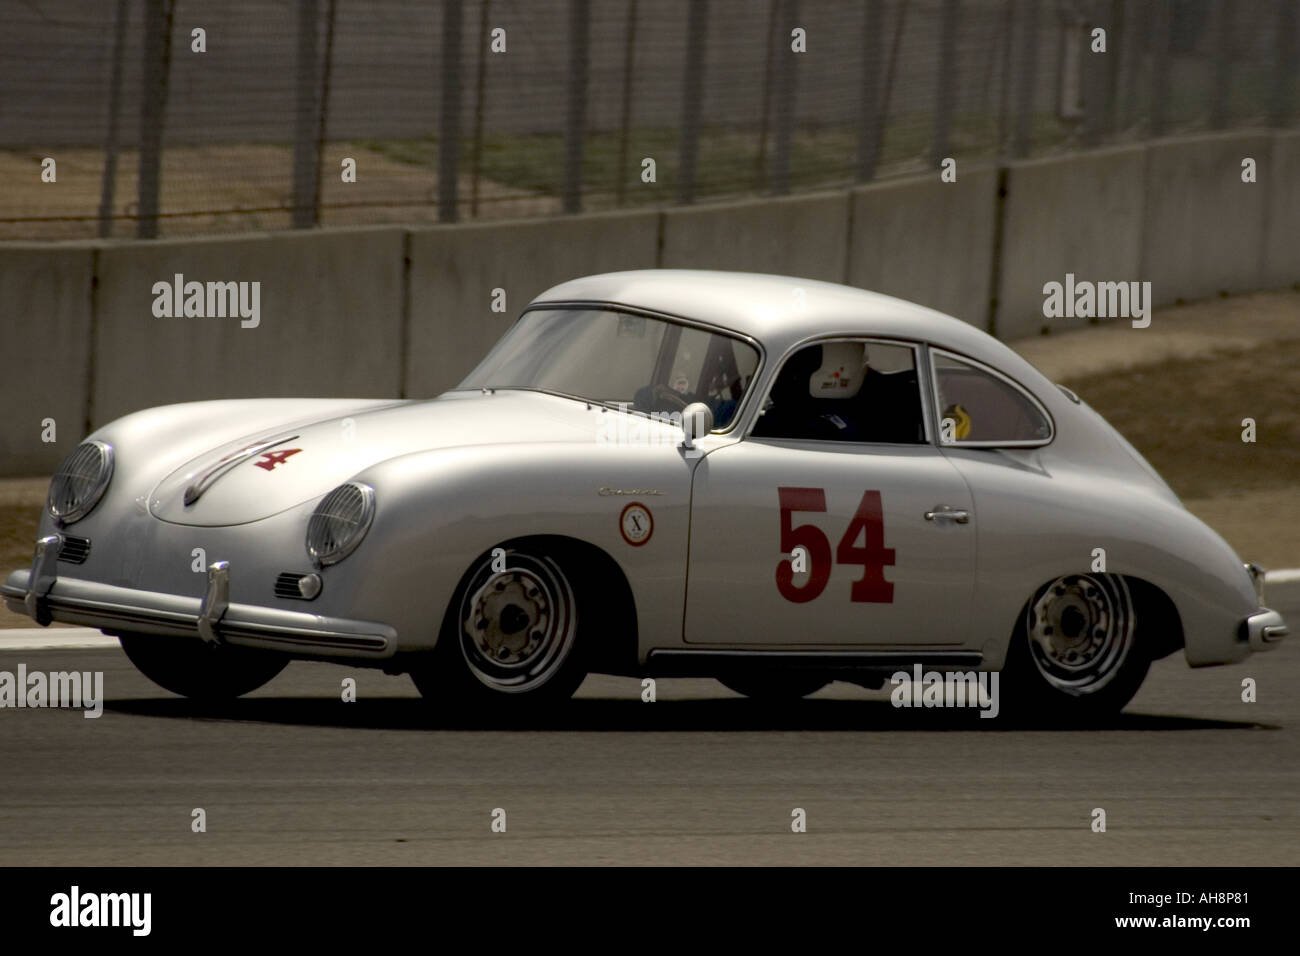 Historic Racing Car on Track Monterey Historic Automobile Races - Stock Image